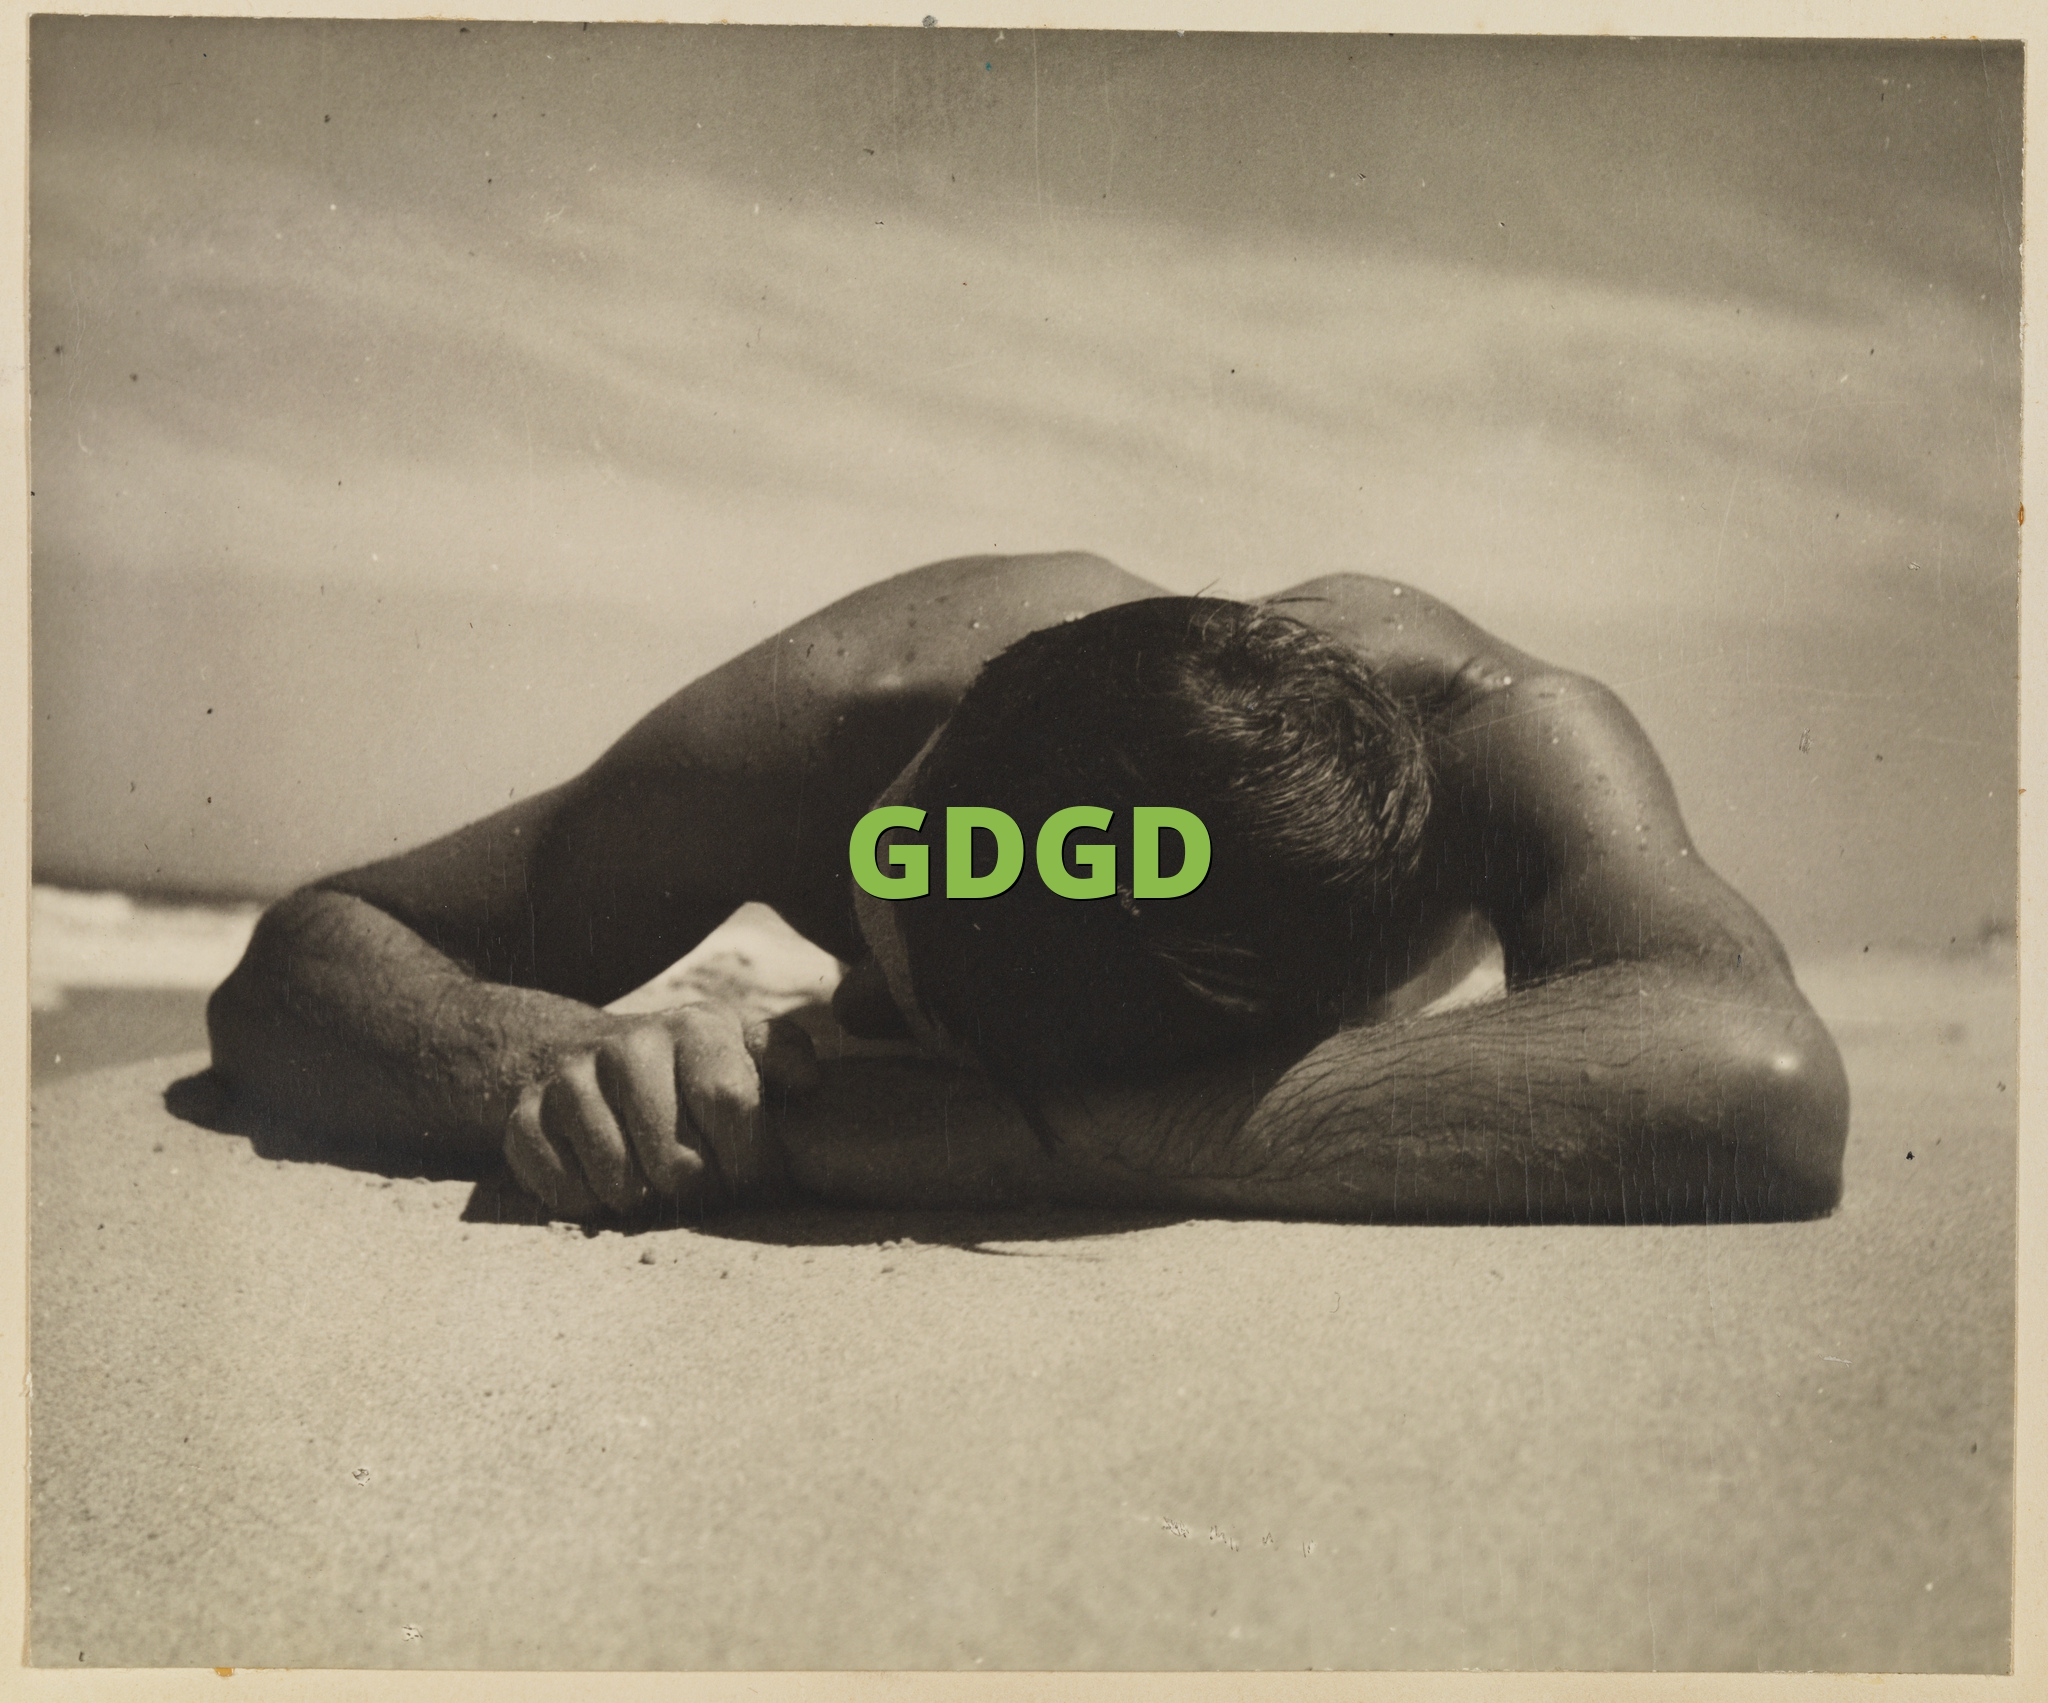 GDGD